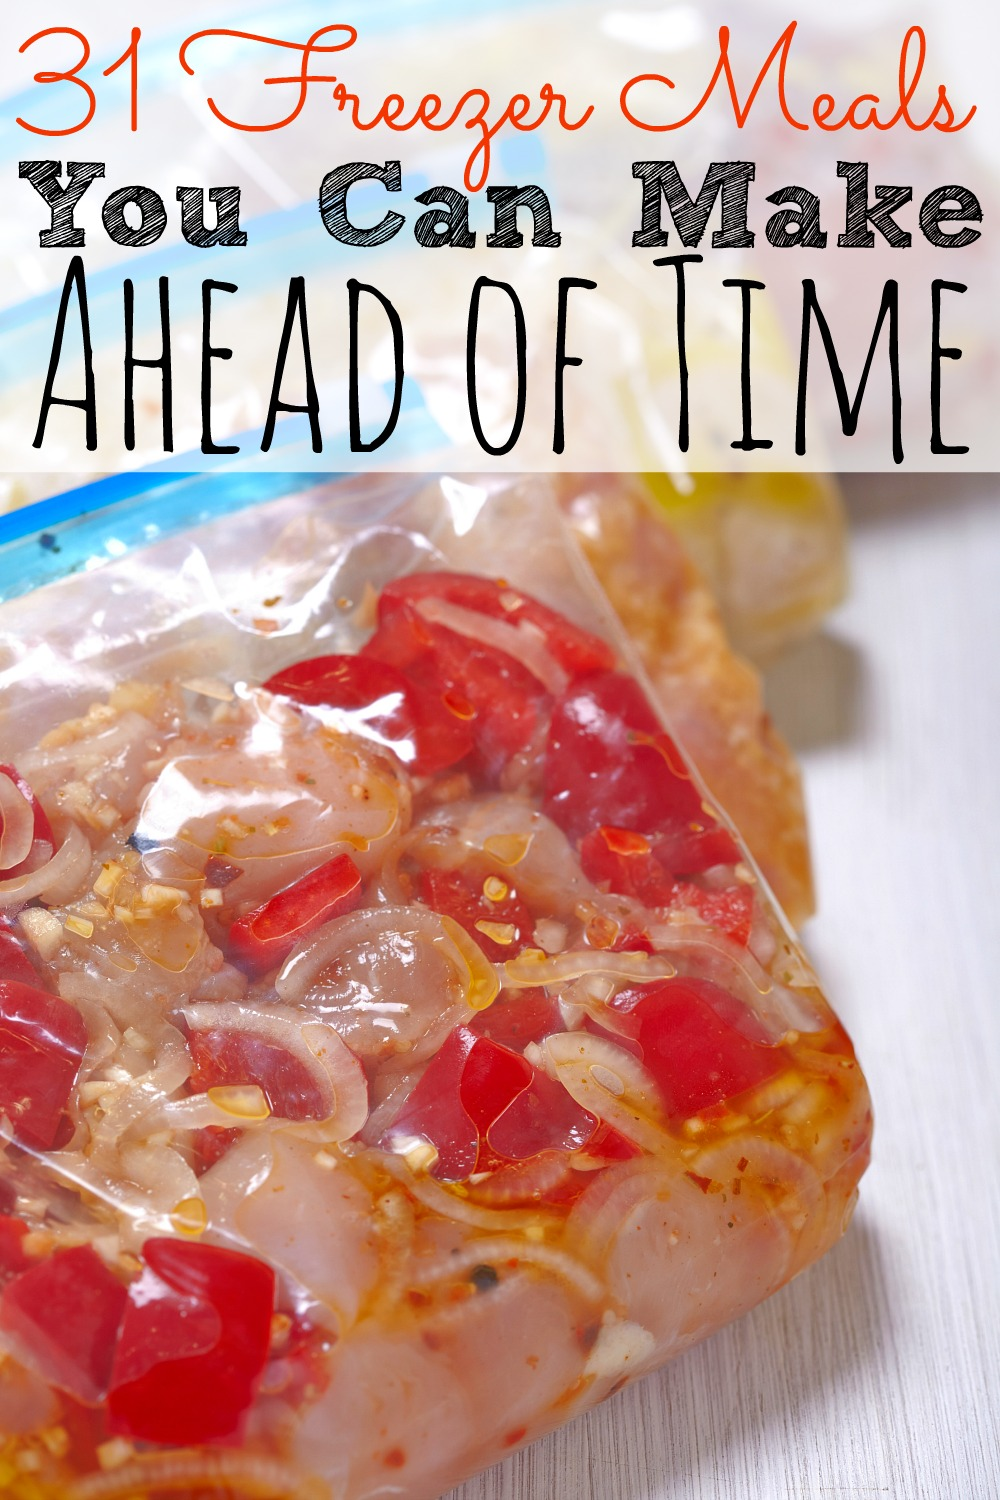 31 Freezer Meals You Can Make Ahead Of Time - abccreativelearning.com